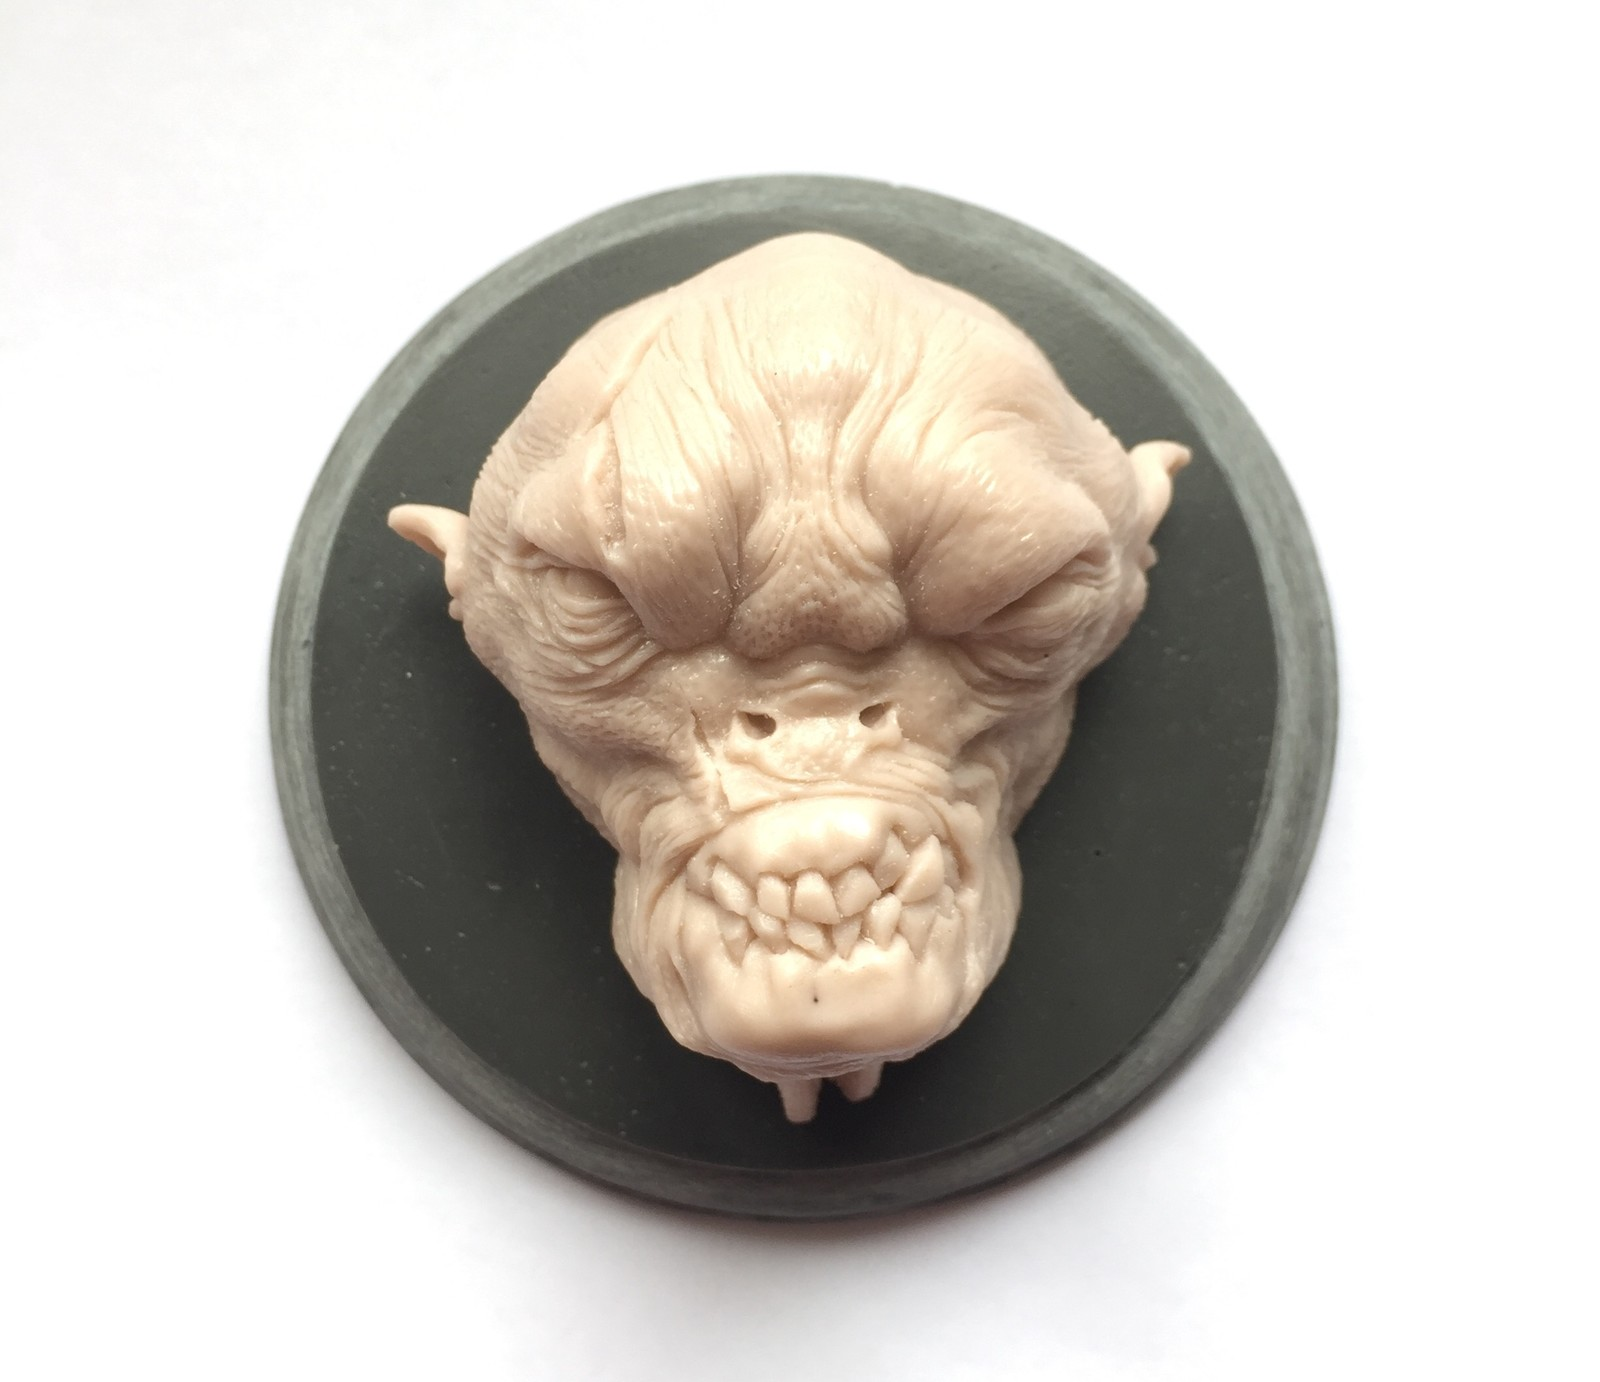 Orc/cast resin/2,5 inches